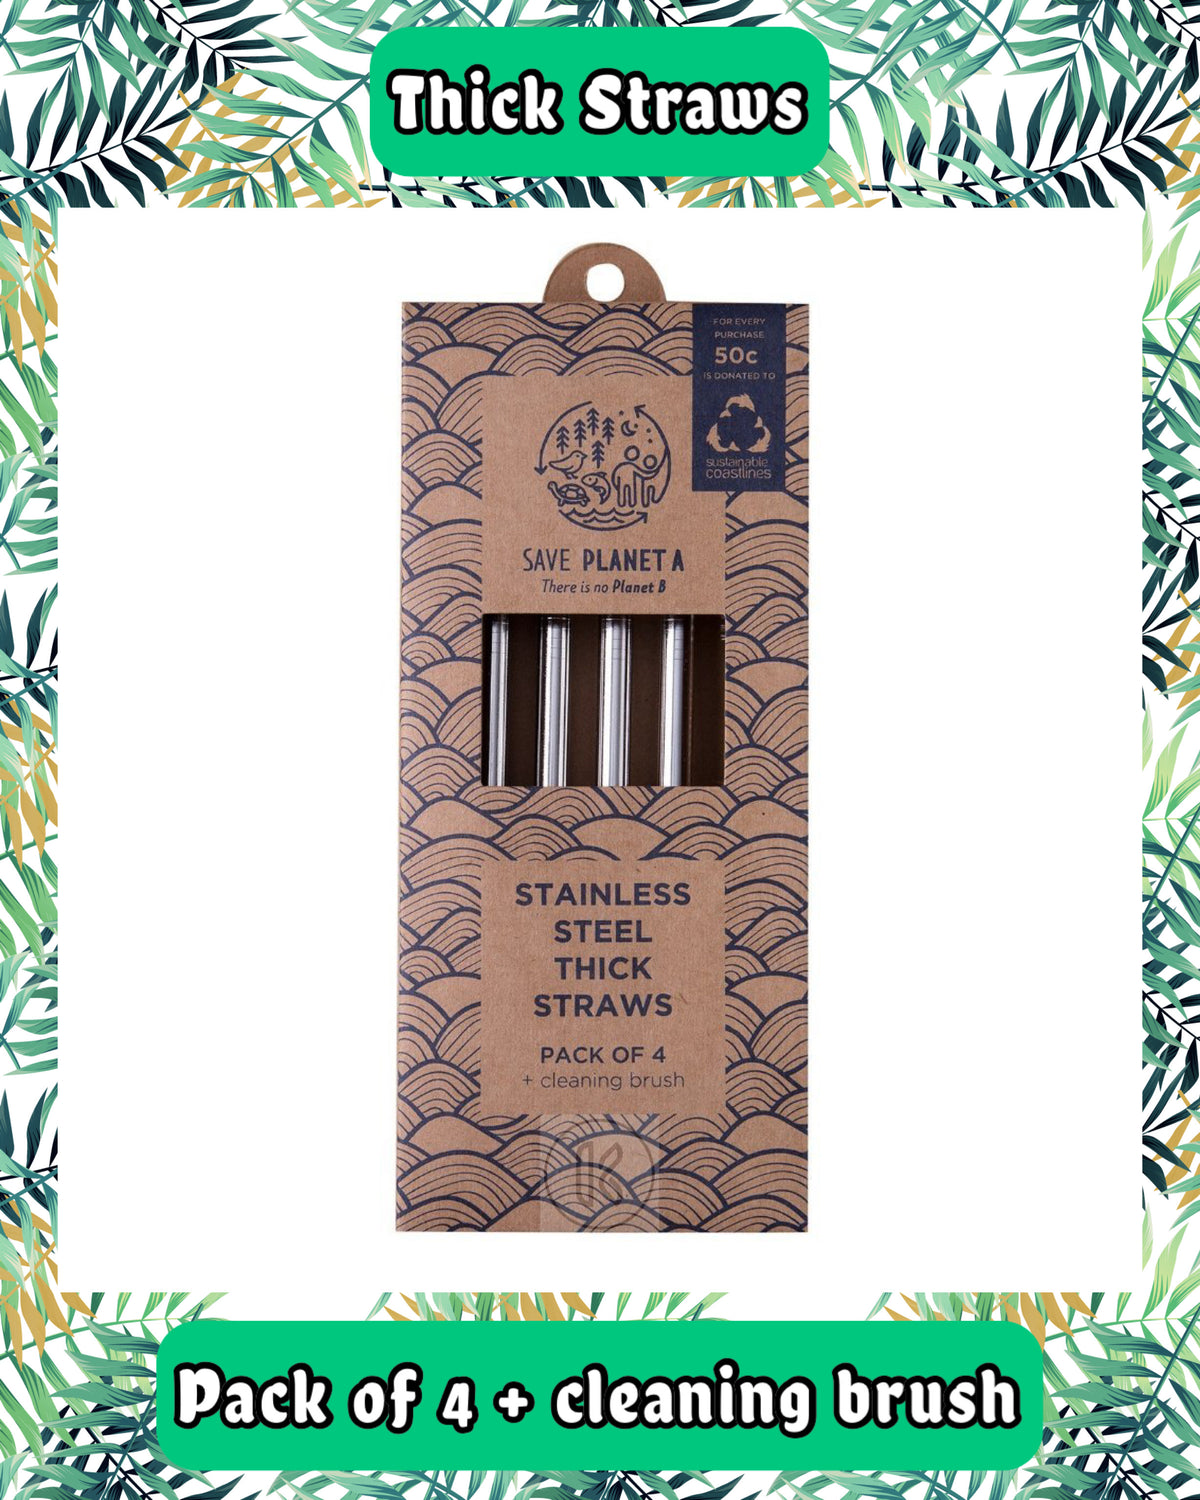 Stainless Steel Reusable Thick Straws - Kind Living Store